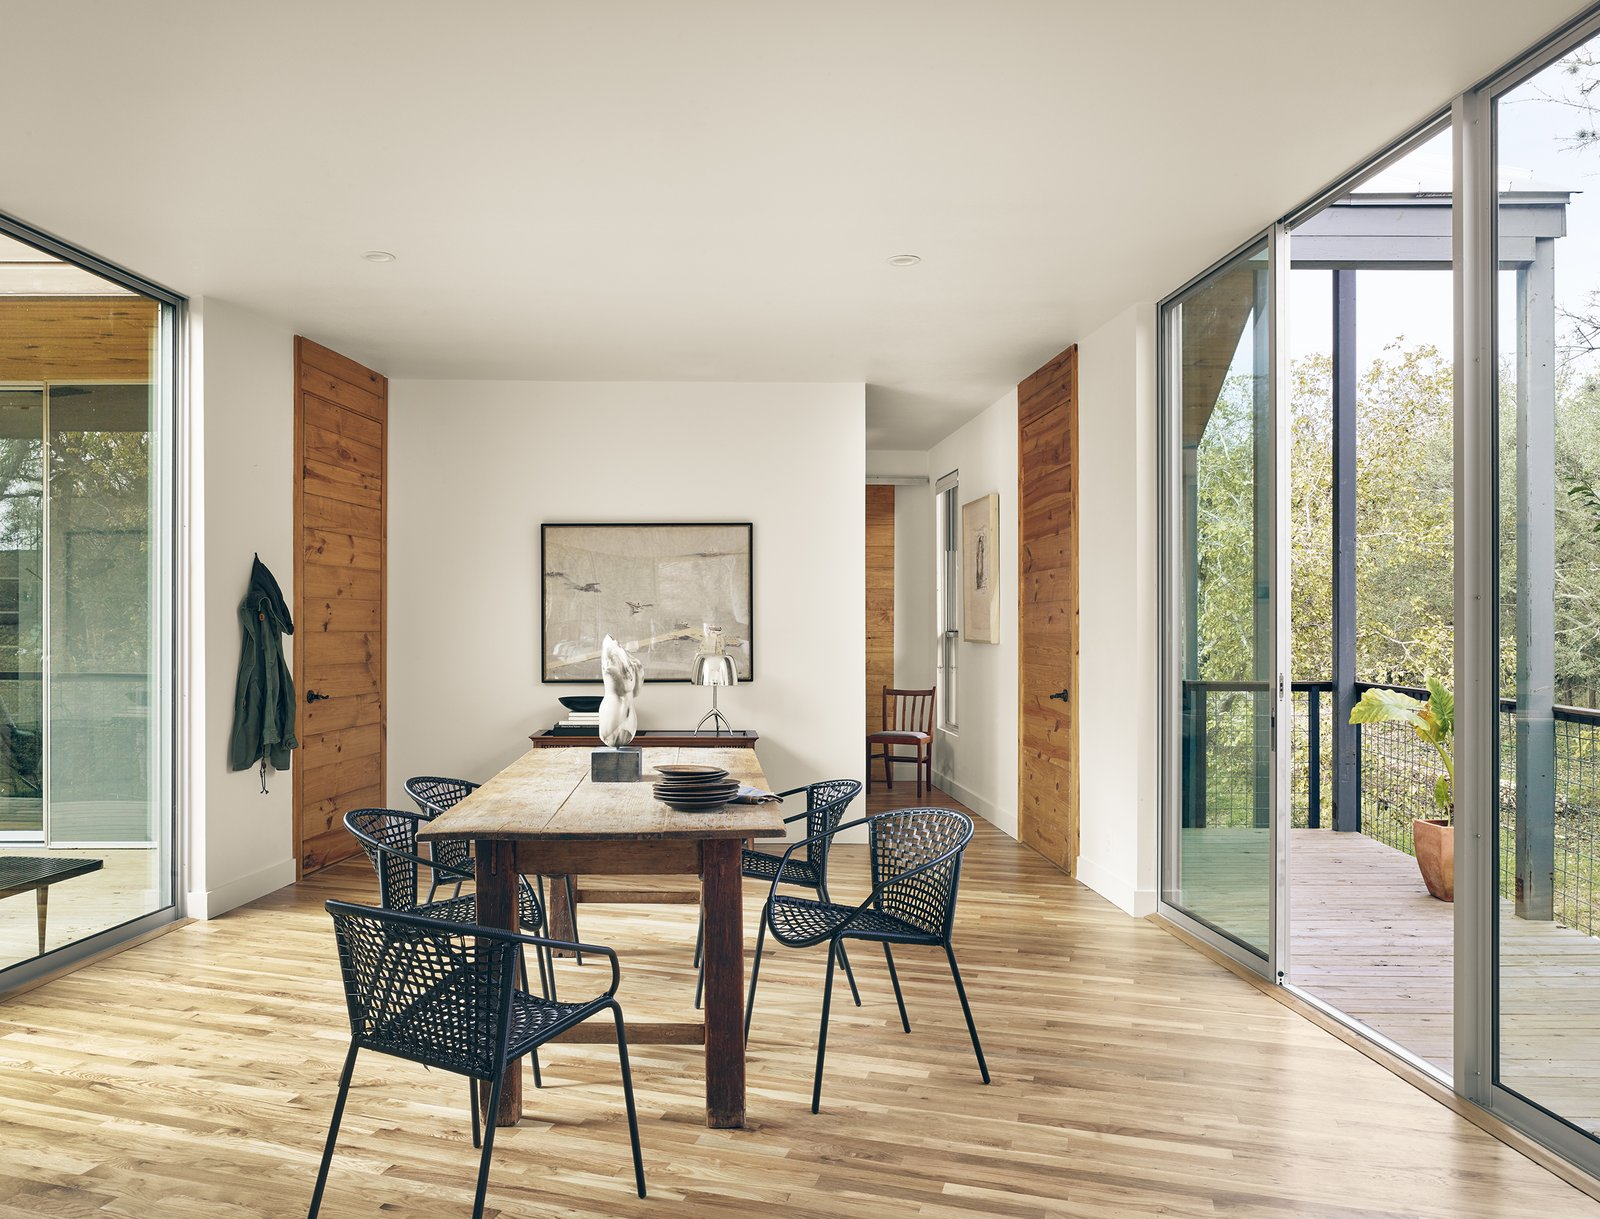 Dining Room, Medium Hardwood Floor, Table, Recessed Lighting, Wall Lighting, Chair, Ceiling Lighting, and Storage View of dining area and outdoor porch in the trees by Low Design Office  Guadalupe River House